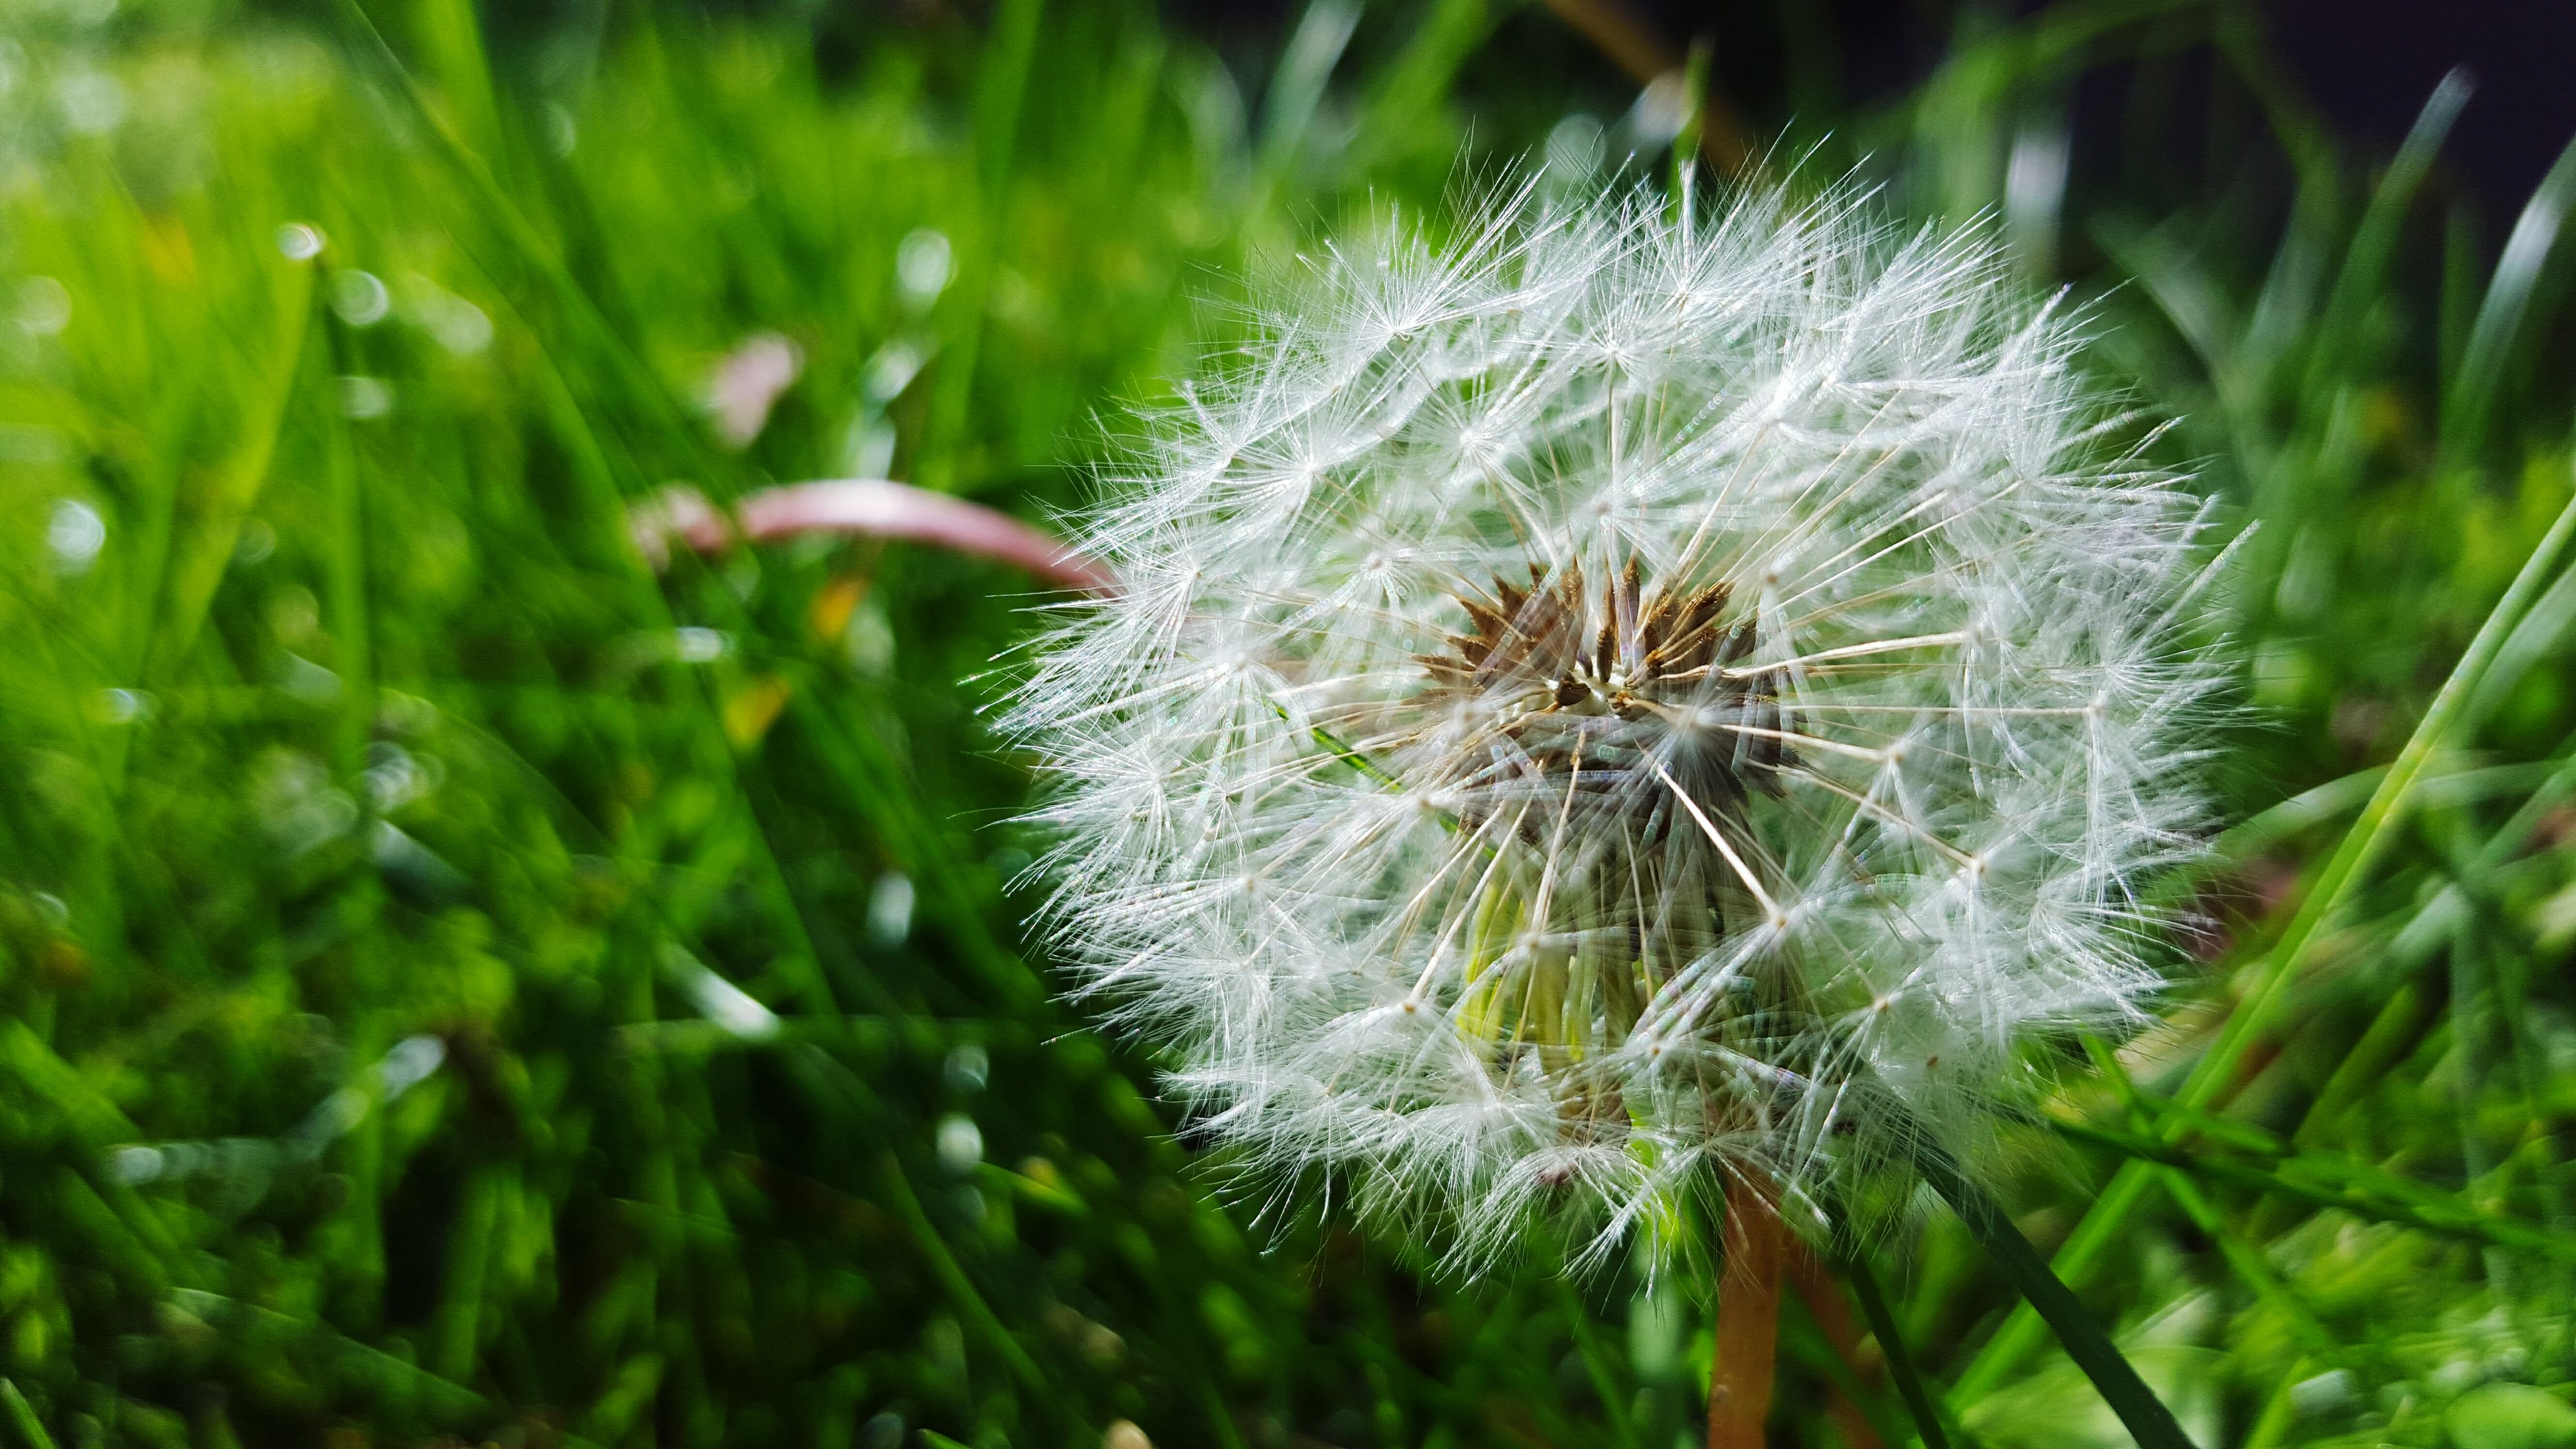 dandelion, flower, fragility, freshness, growth, close-up, flower head, single flower, beauty in nature, focus on foreground, nature, softness, plant, uncultivated, wildflower, white color, dandelion seed, stem, selective focus, day